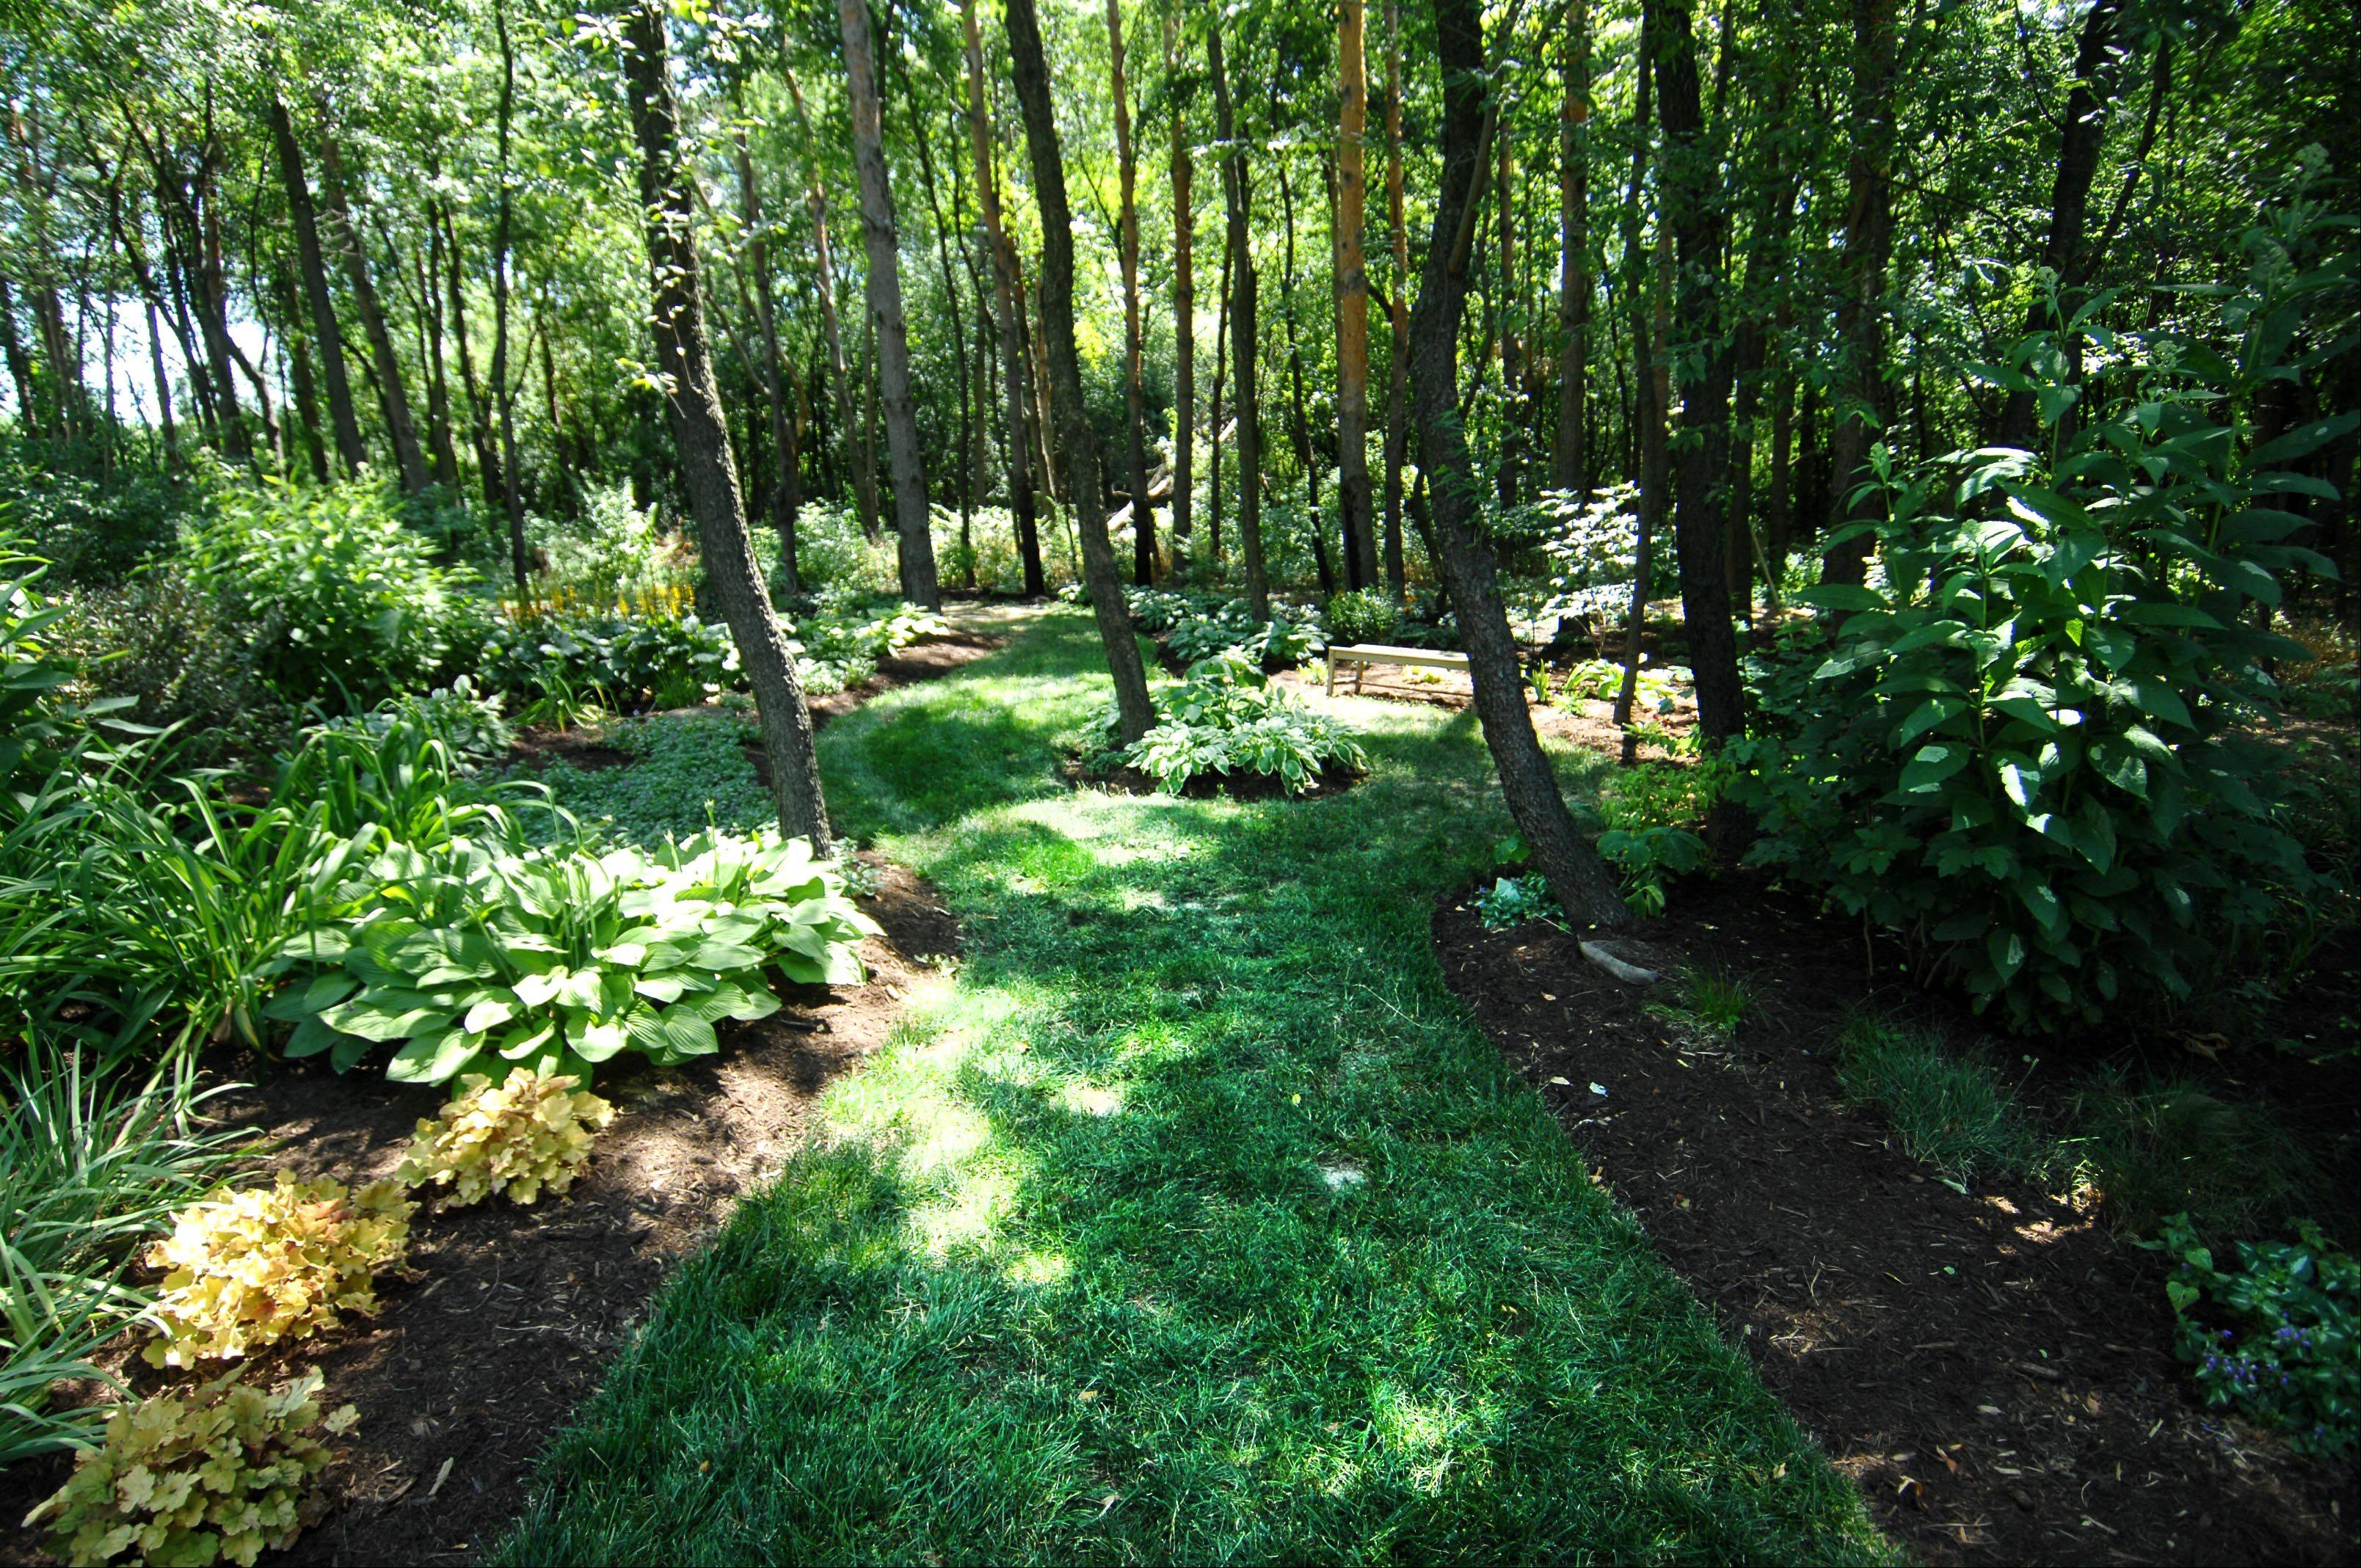 Here's an example of what awaits visitors at Tranquility Trails on the Bull Valley garden walk.